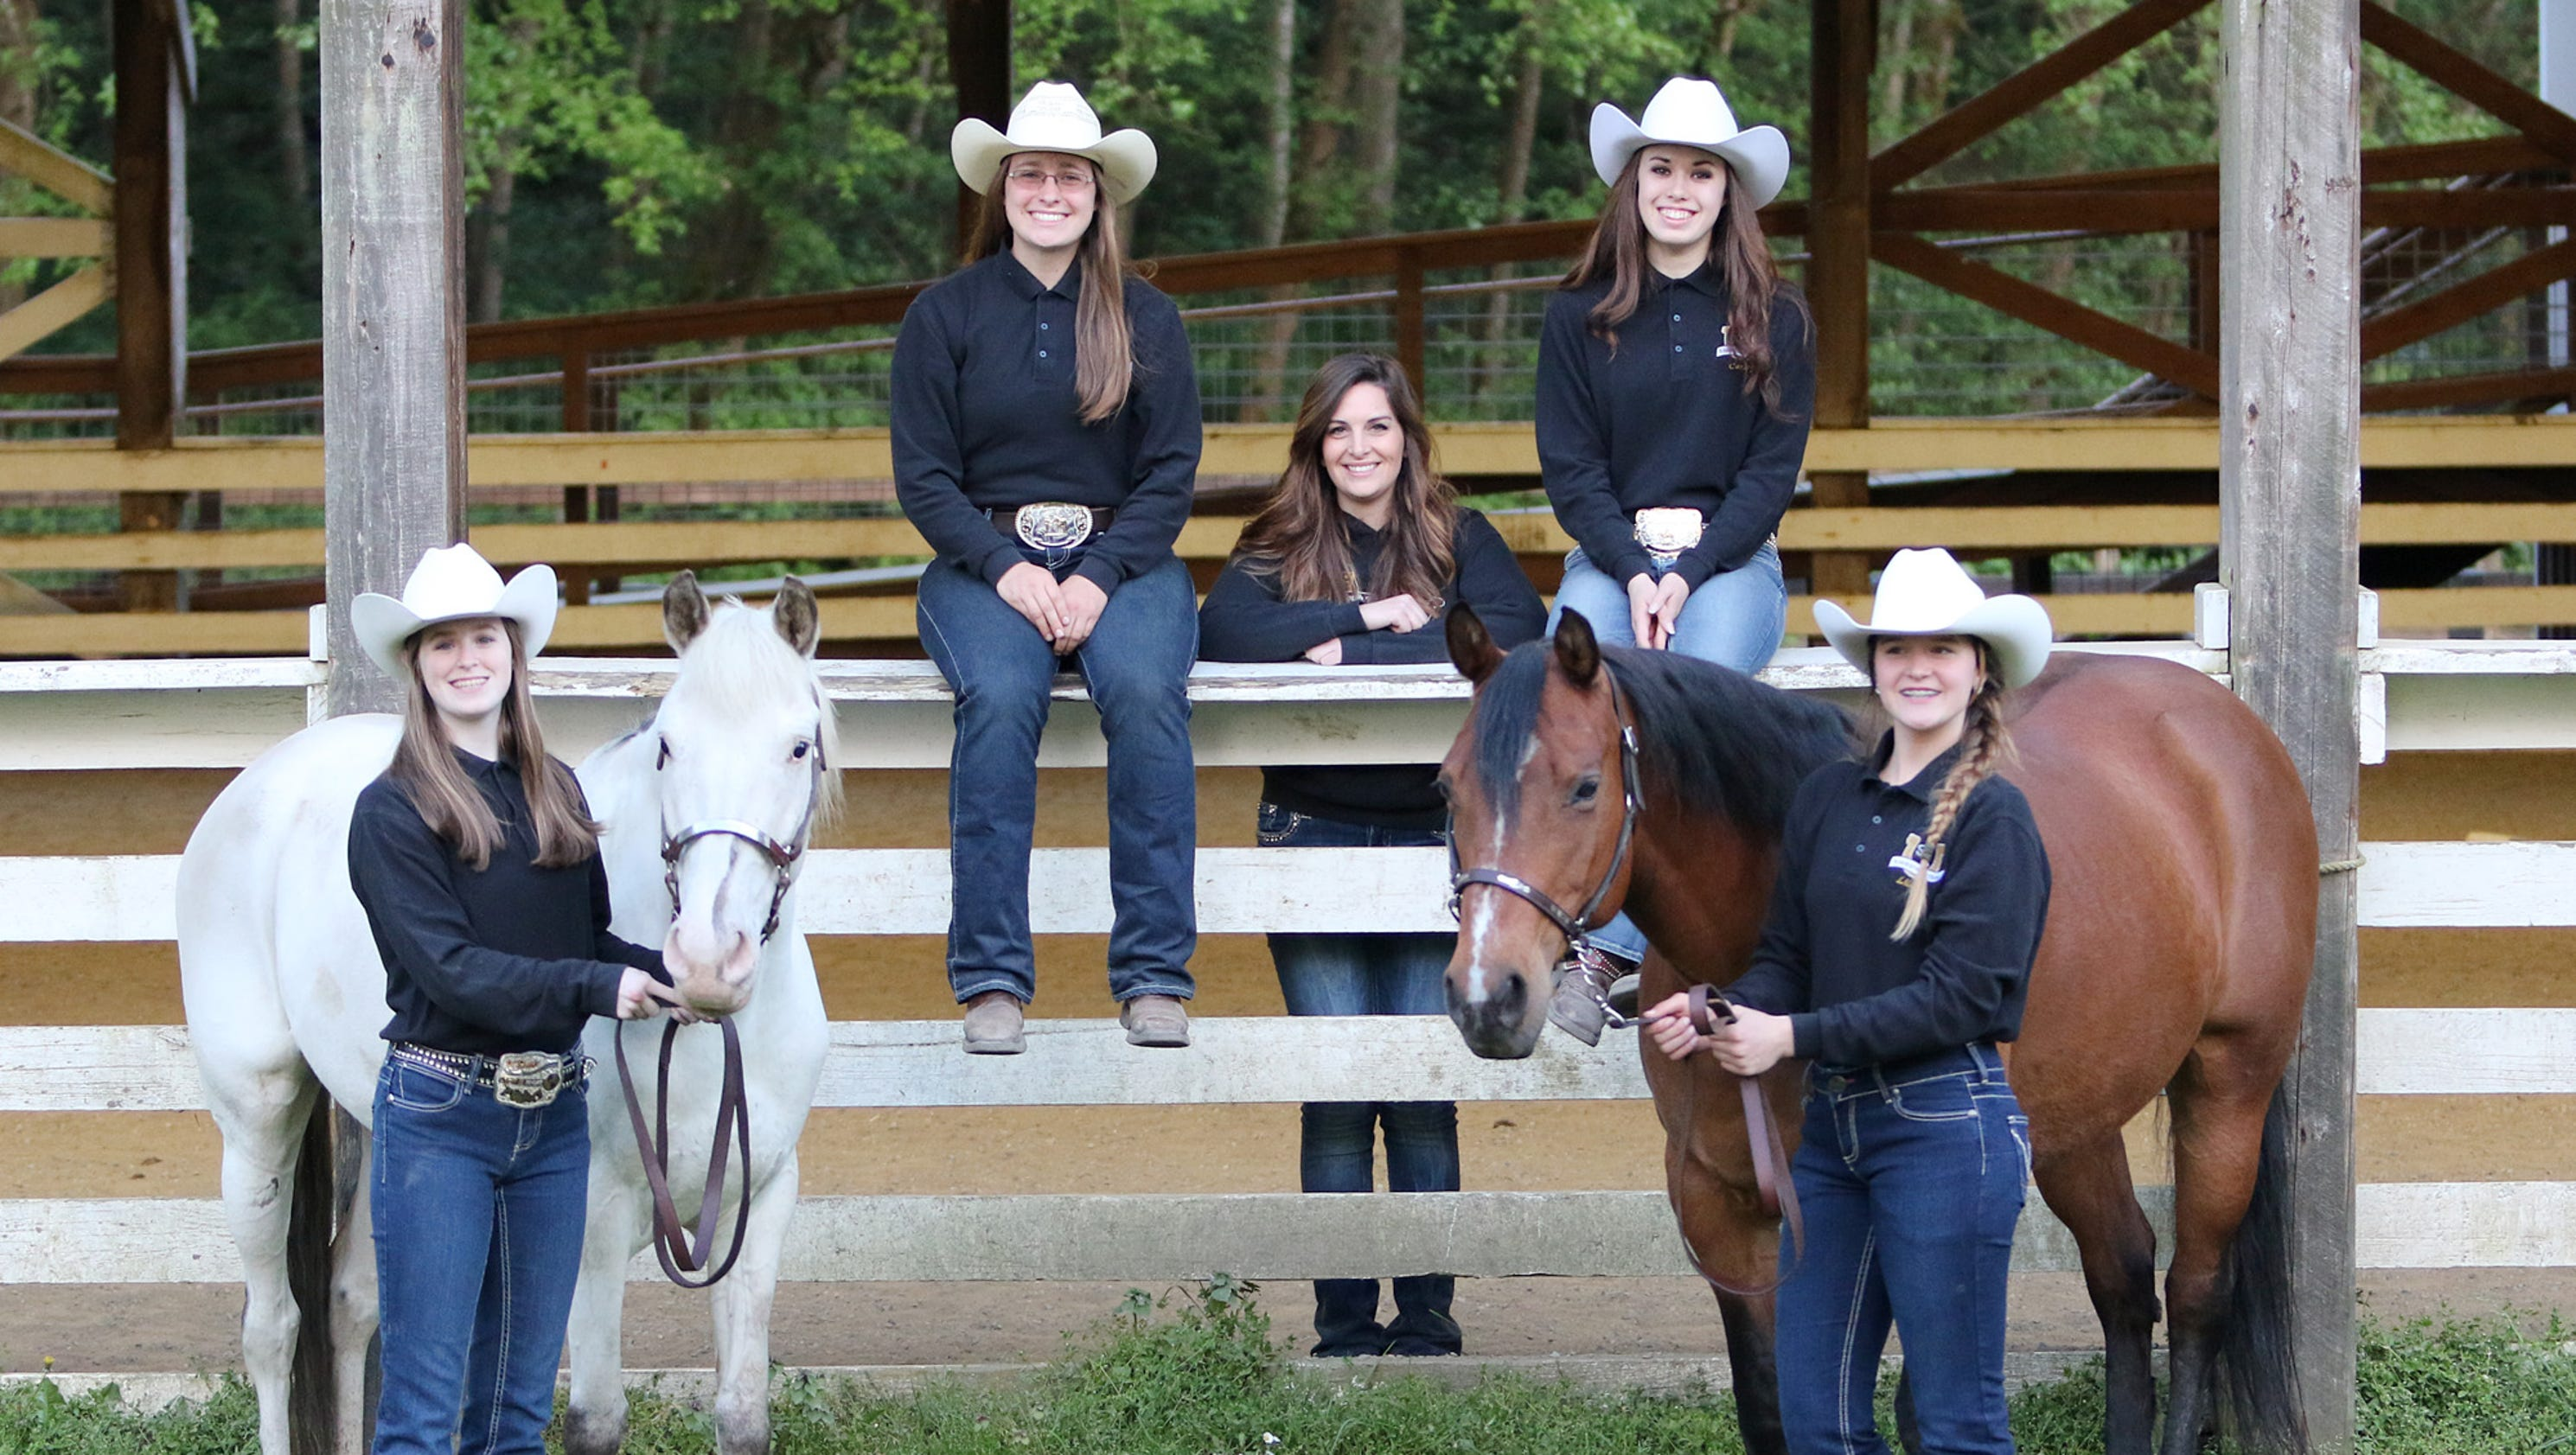 South Kitsap Based Equestrian Team Looking For Repeat